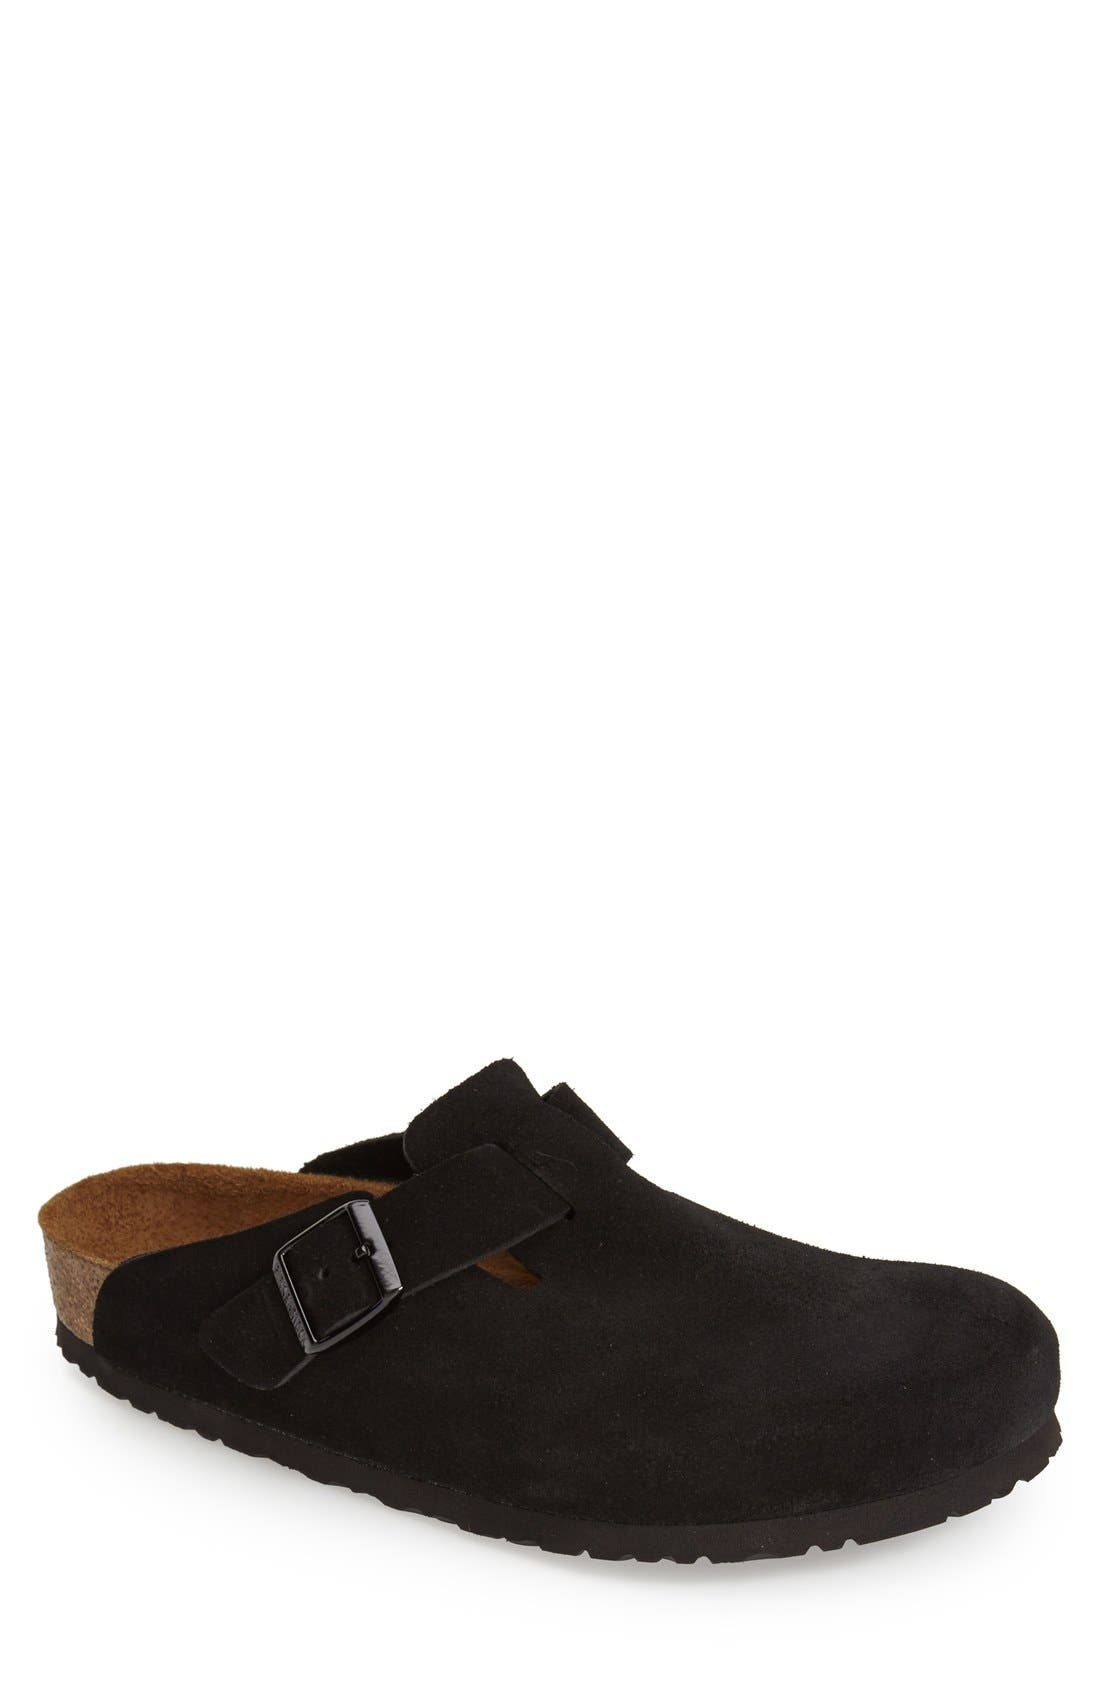 'Boston Soft' Clog,                             Main thumbnail 1, color,                             Black